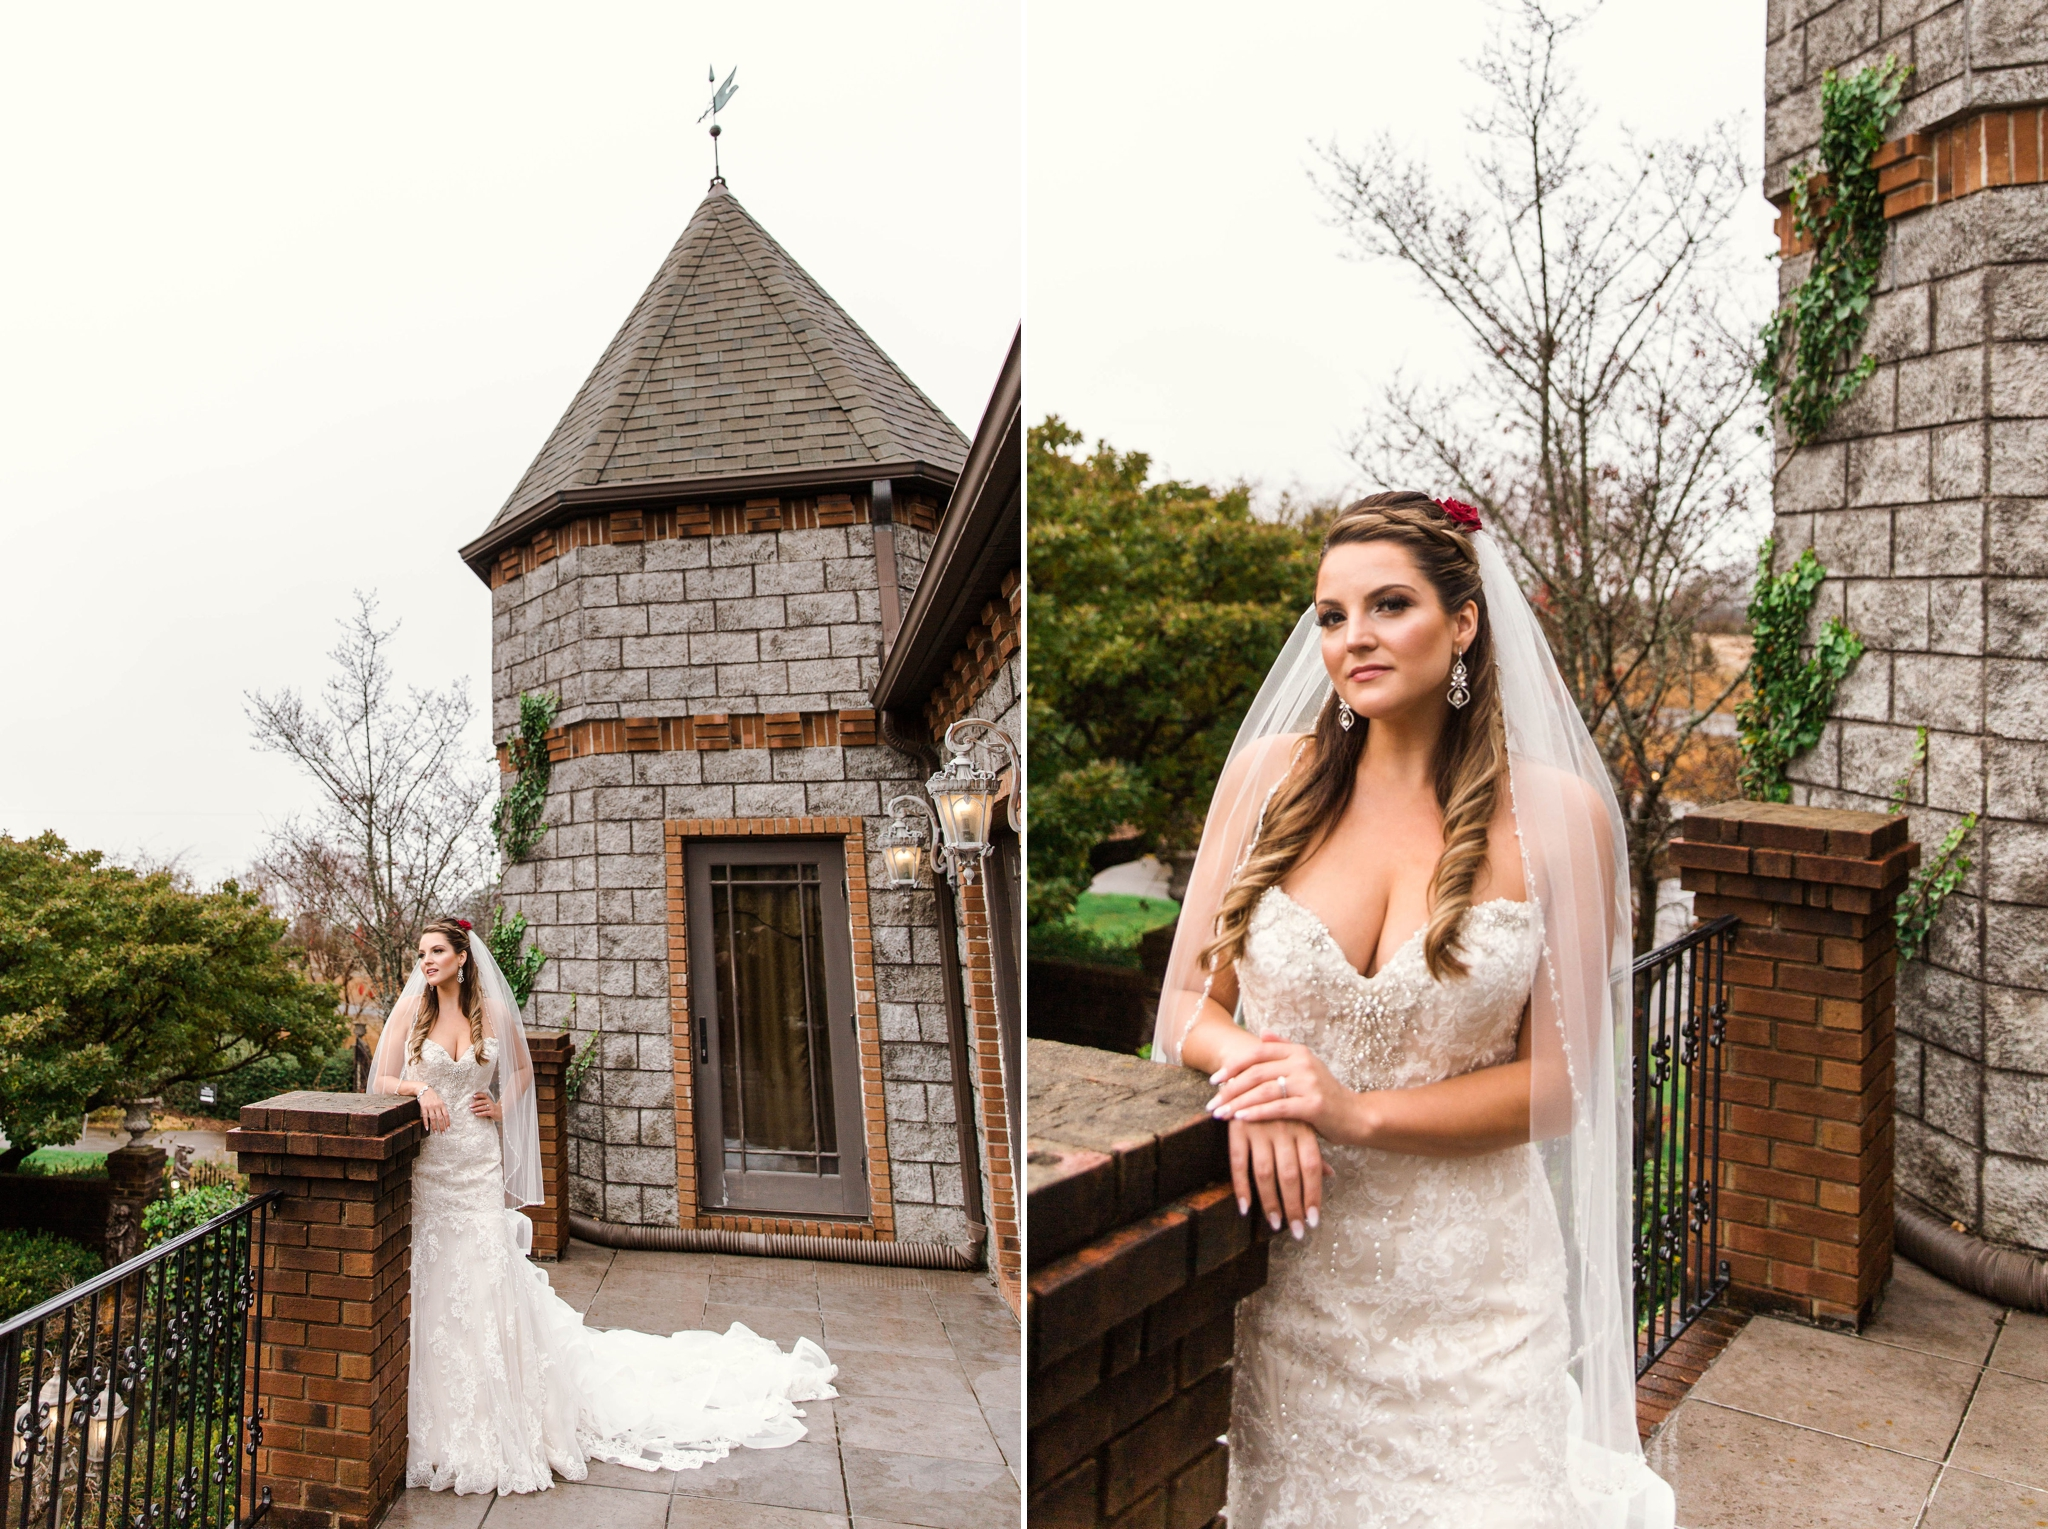 Bridal Portraits at the Castle - Honolulu Oahu Hawaii Wedding Photographer